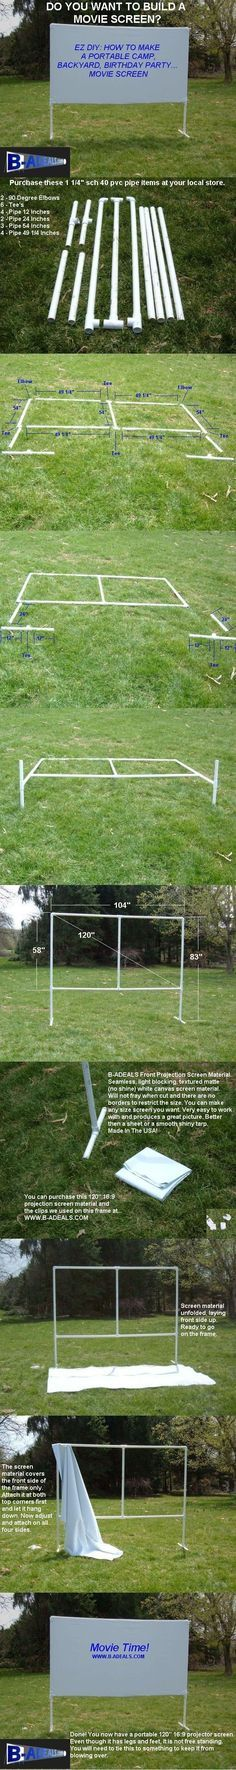 Backyard Movie Theater Outdoor Movie Night. Free DIY Projection Screen Frame Instructions from http://www.b-aDeals.com